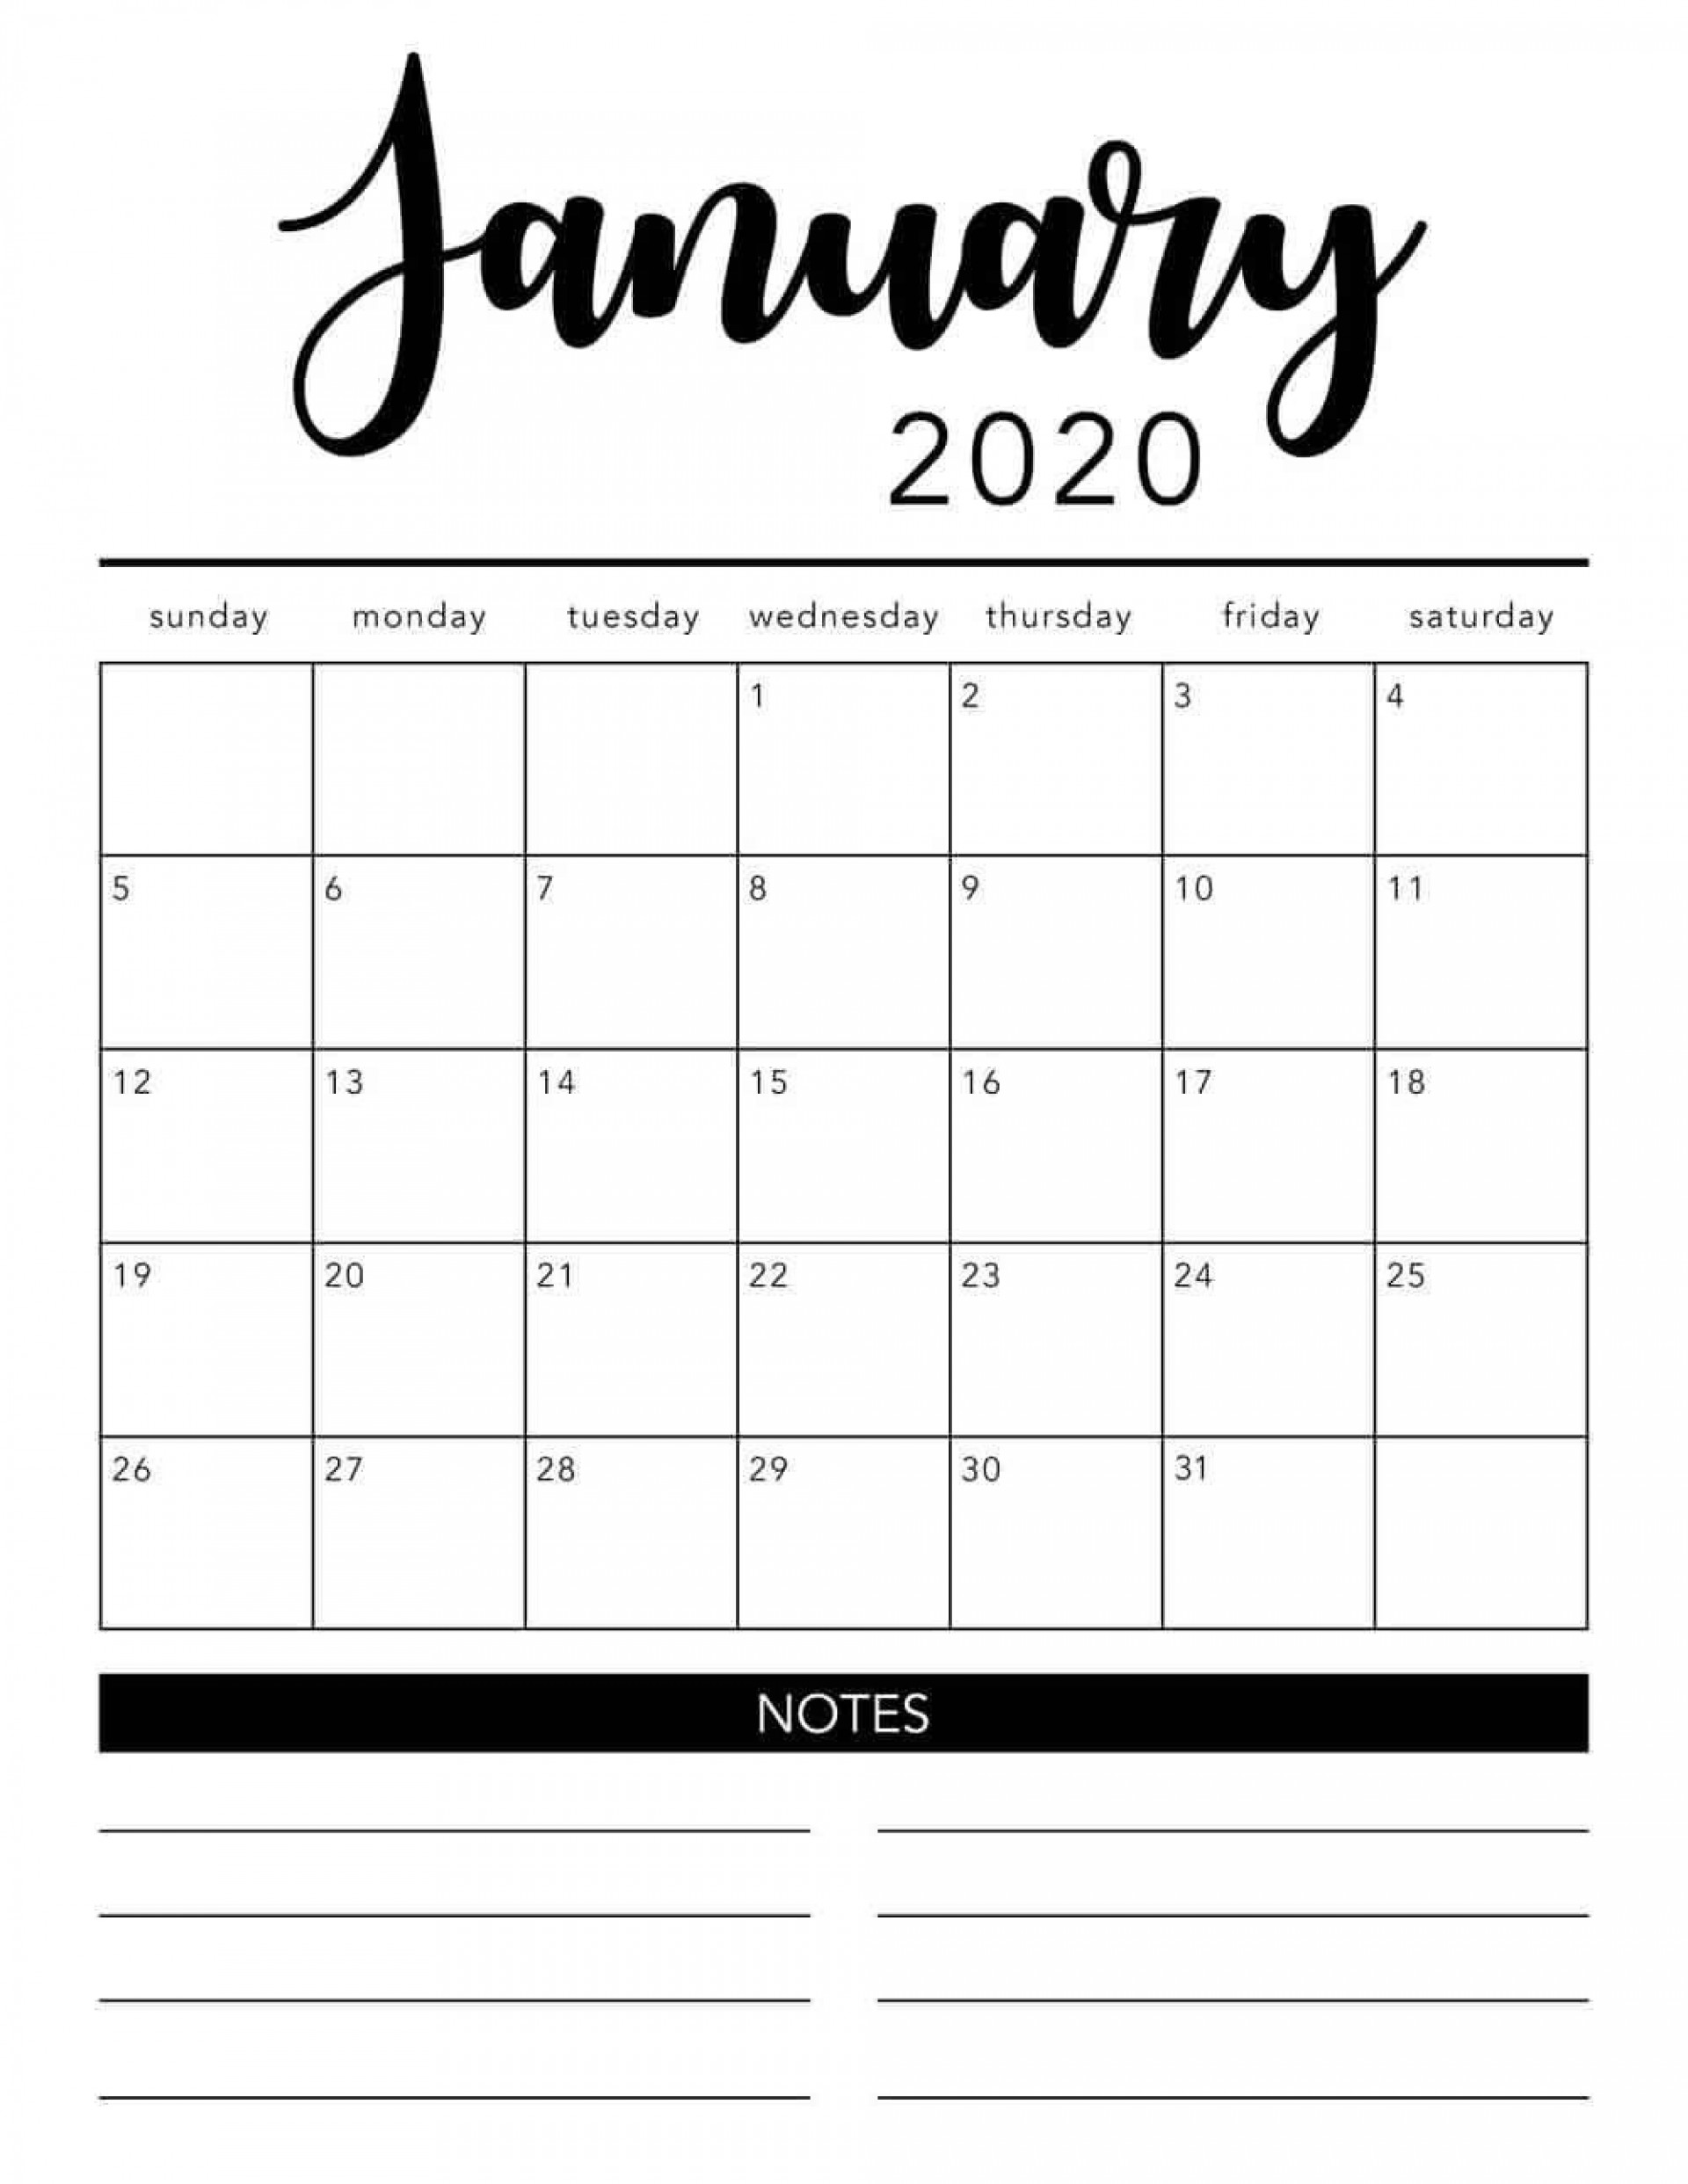 003 Singular Free 2020 Calendar Template Photo  Templates Monthly Excel Download Printable May1920